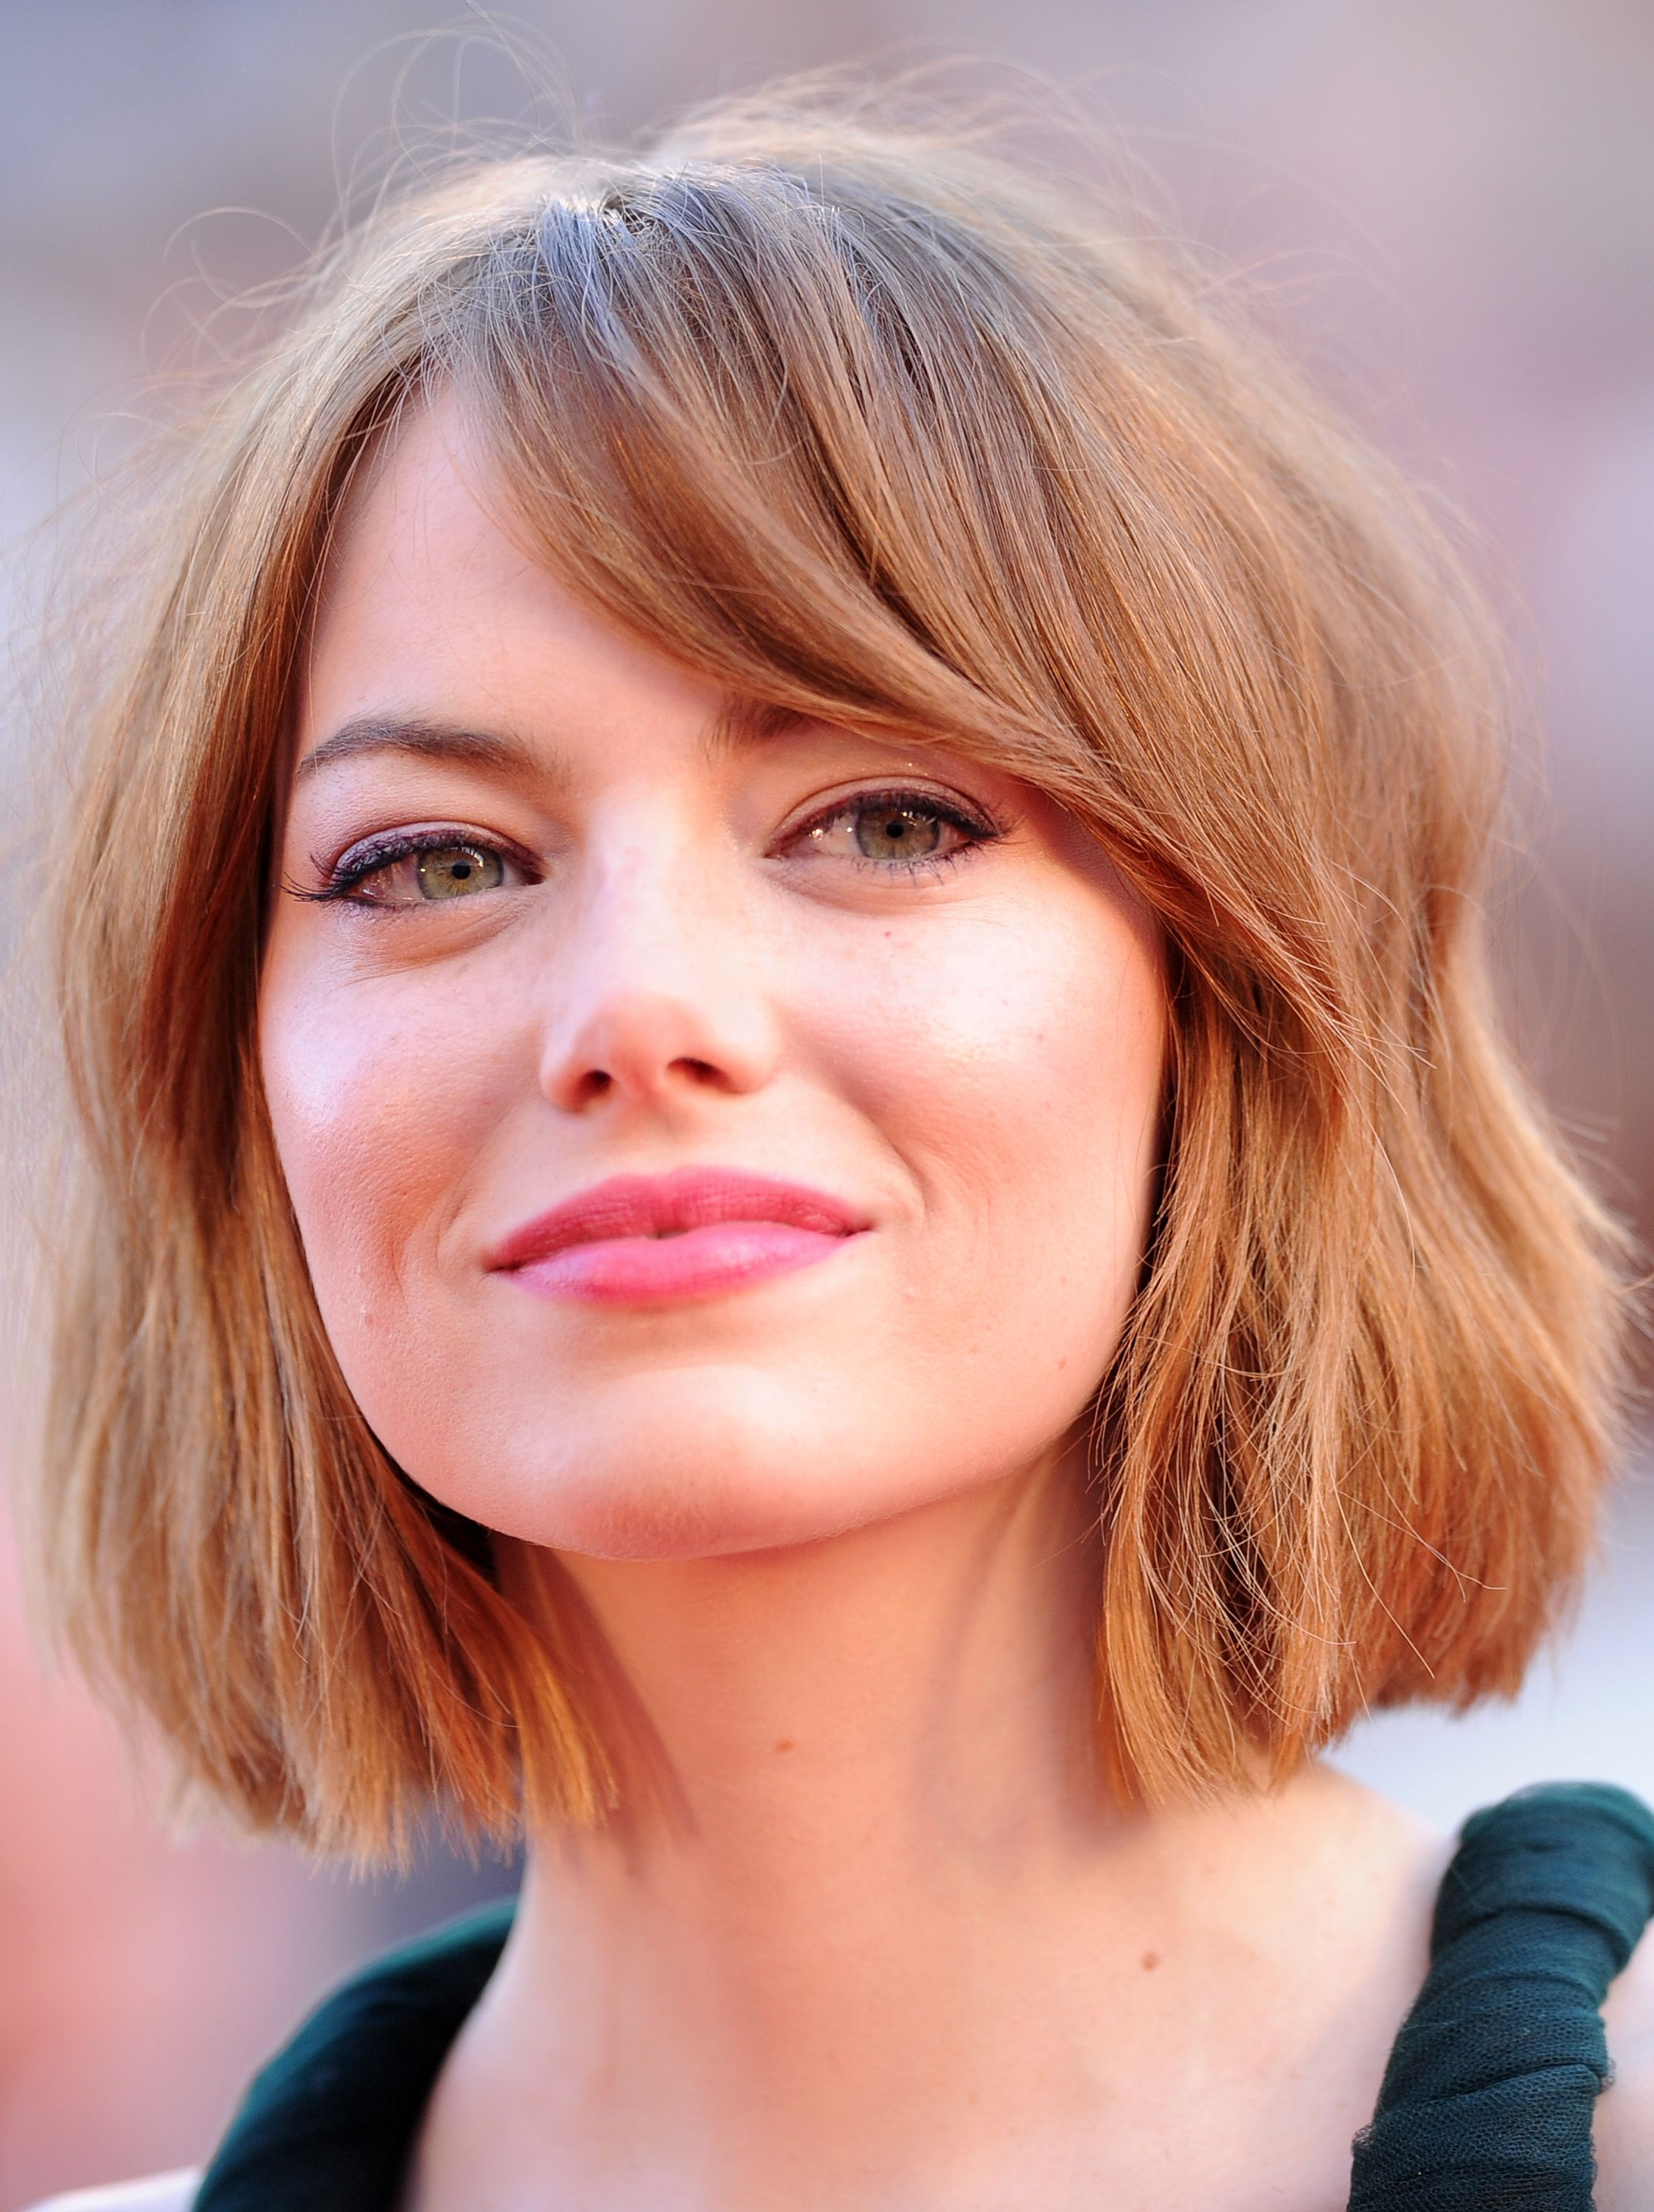 Bob Hairstyles For 2019 53 Short Haircut Trends To Try Now